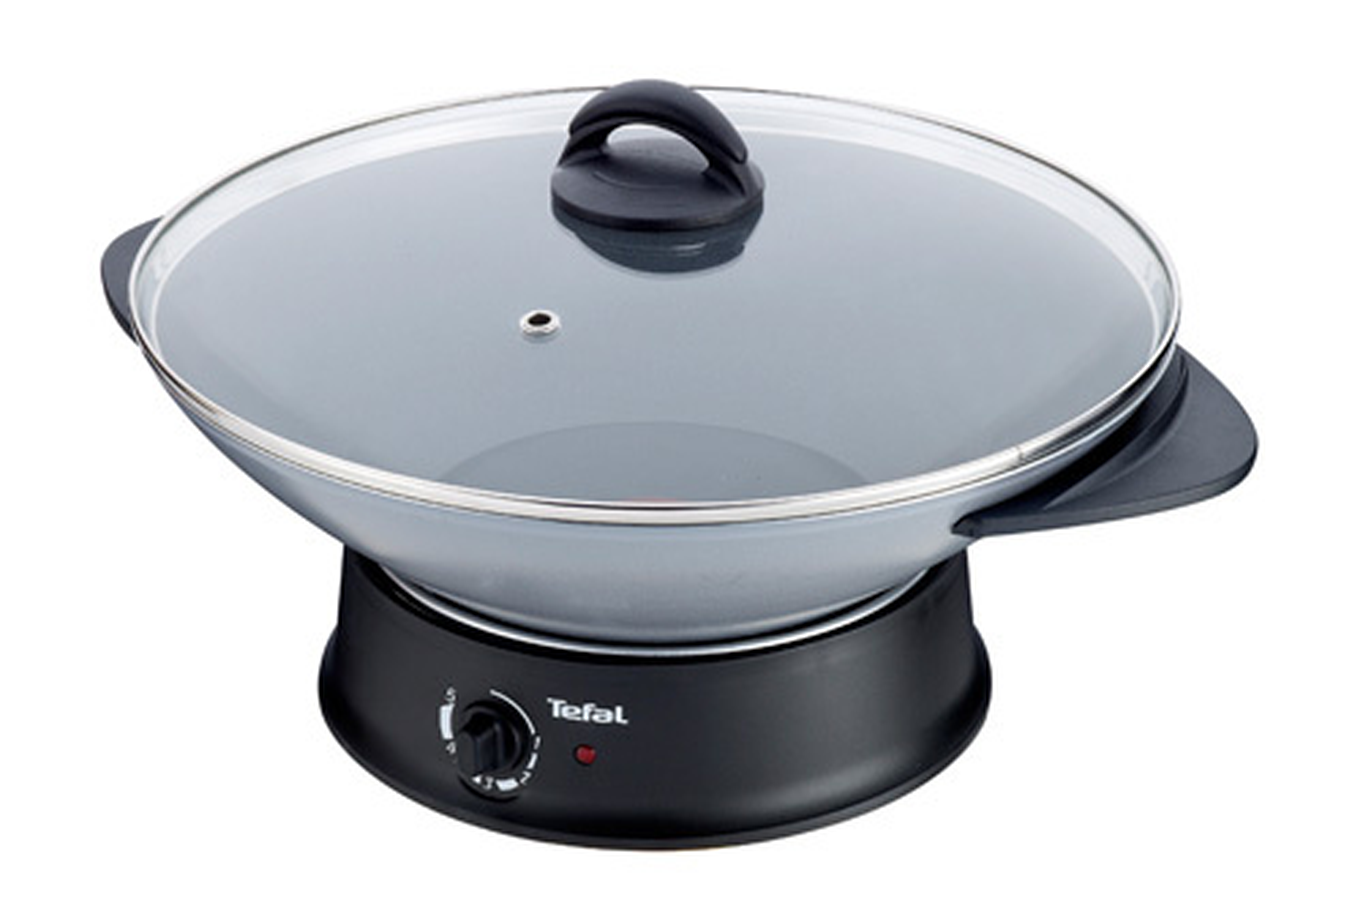 mijoteur tefal wk302013 compact wok fondue 2517957 darty. Black Bedroom Furniture Sets. Home Design Ideas